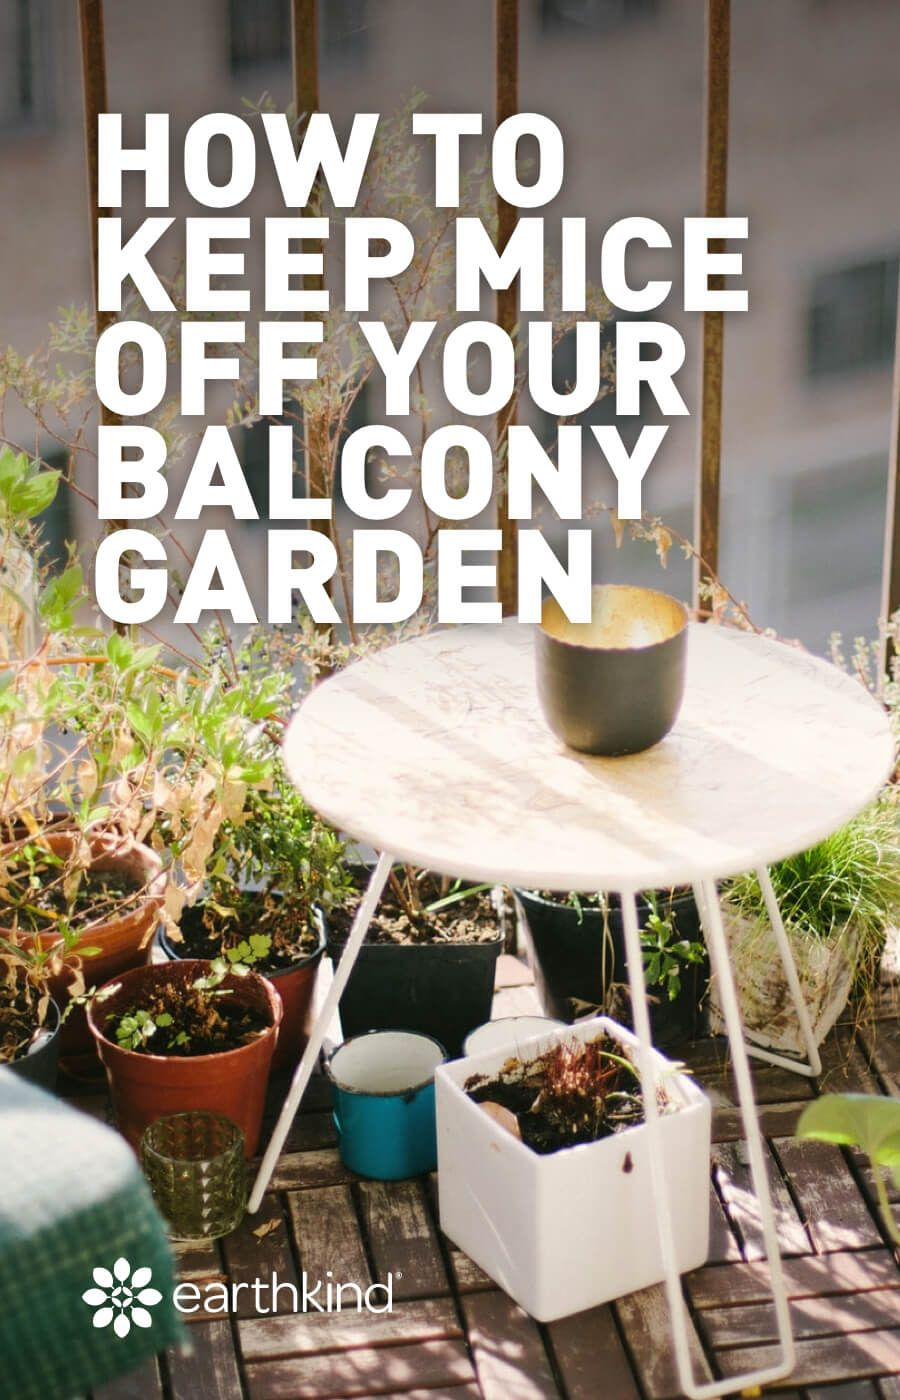 How To Keep Mice Off Your Balcony Garden Earthkind Balcony Garden Garden Care Patio Garden